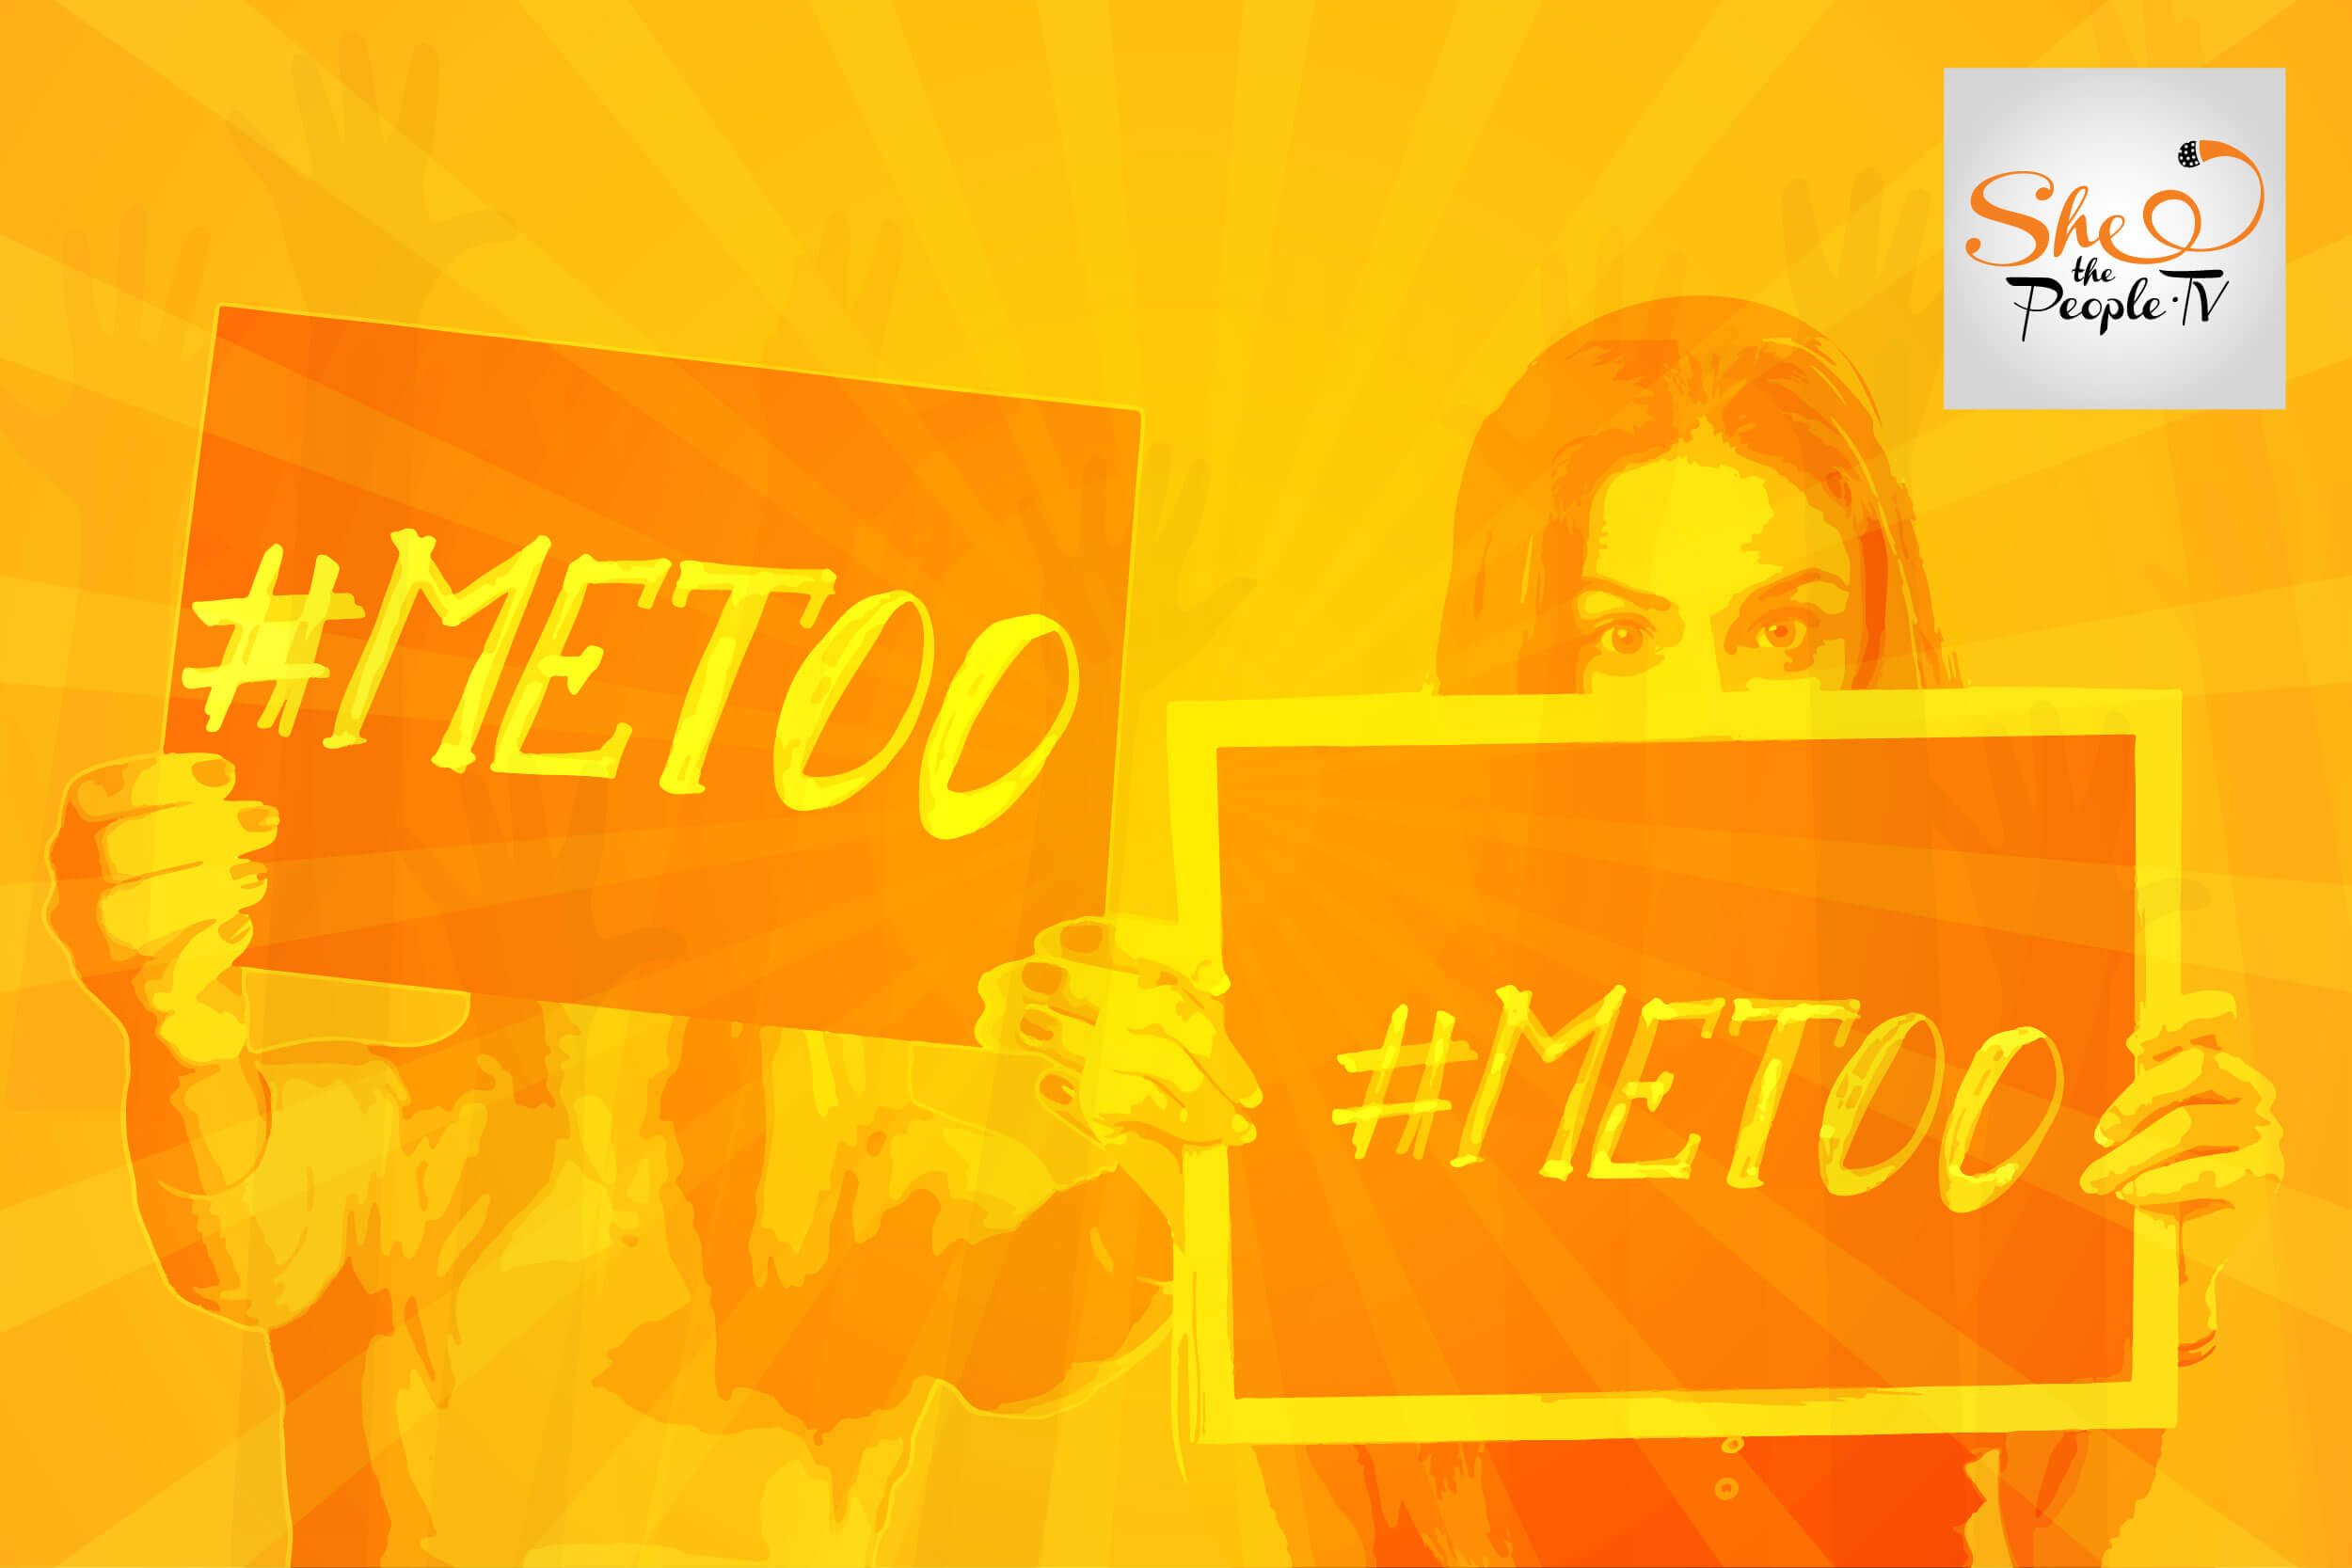 #MeToo Comments Social Media